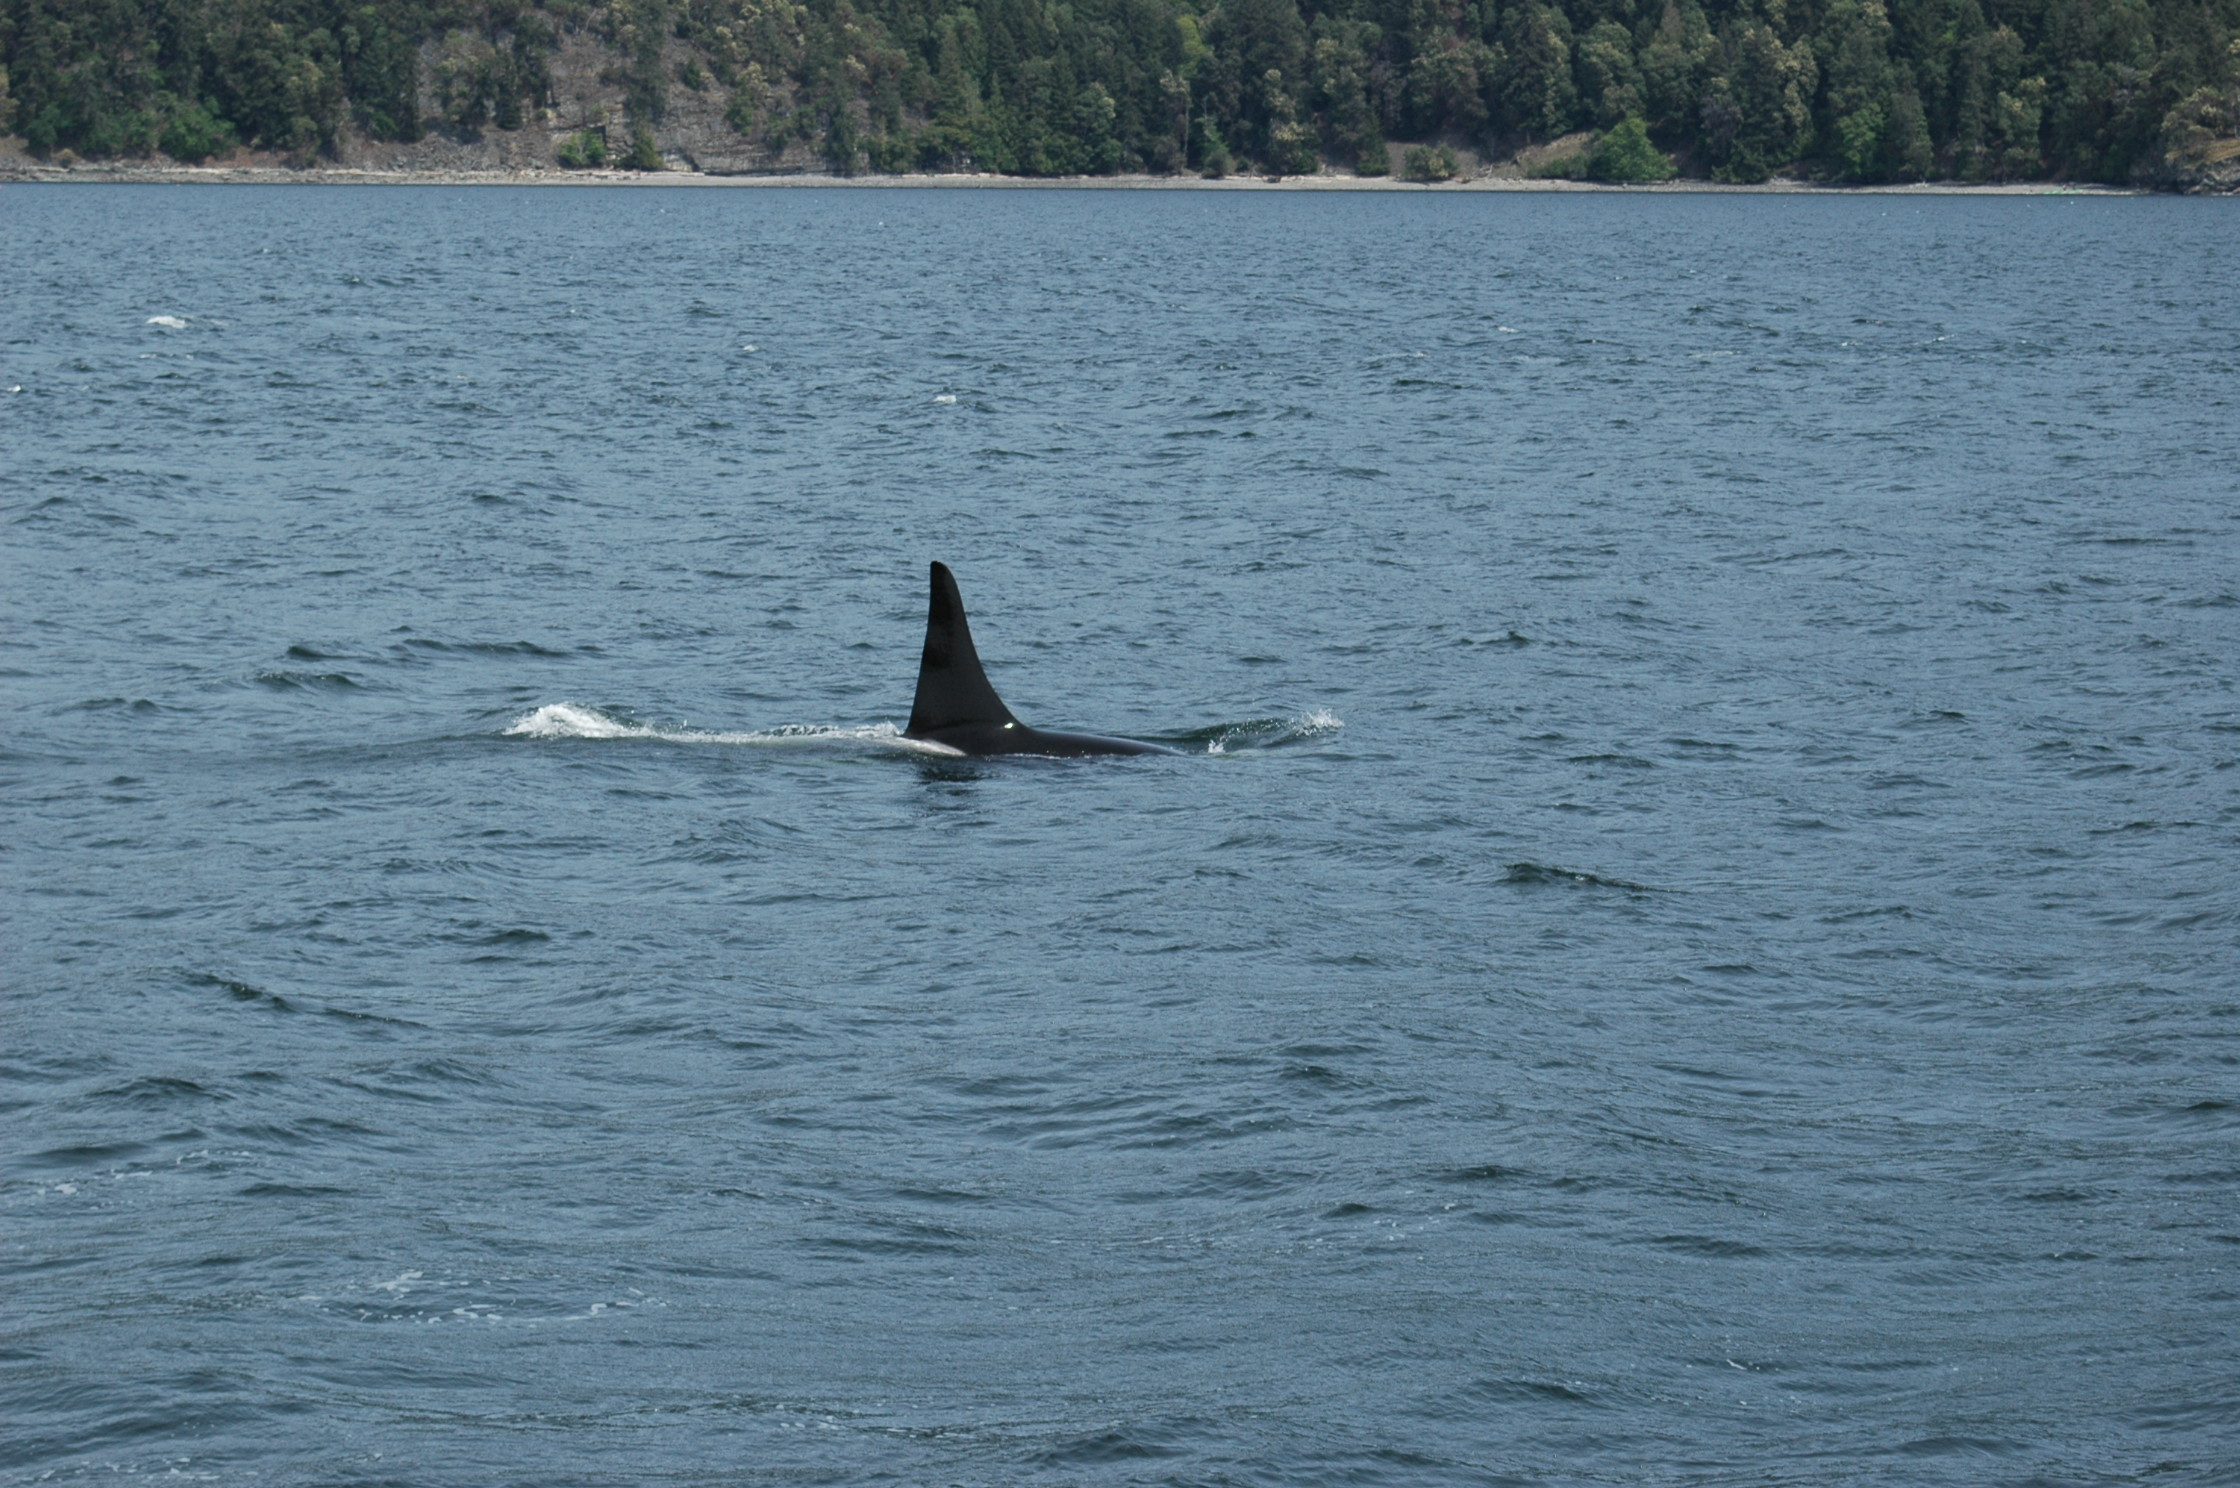 The First Time I Saw Killer Whales! – 28/4/16